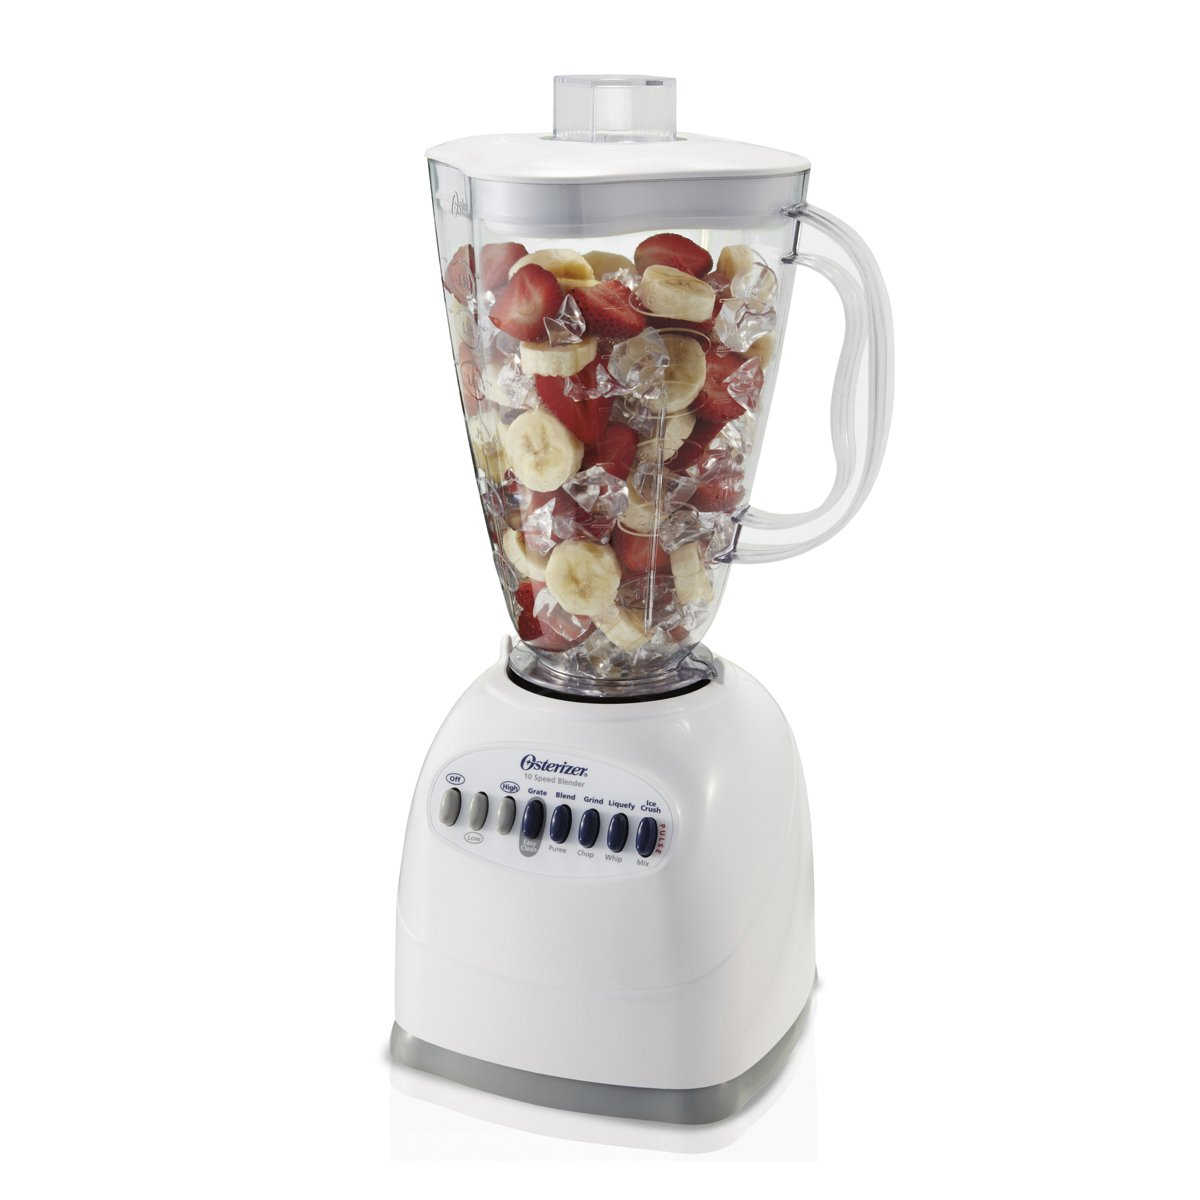 OSTER 6640-022–NP1 6640 ampndashNP1 10-Speed Blender with Plastic Jar, 48 Ounce White